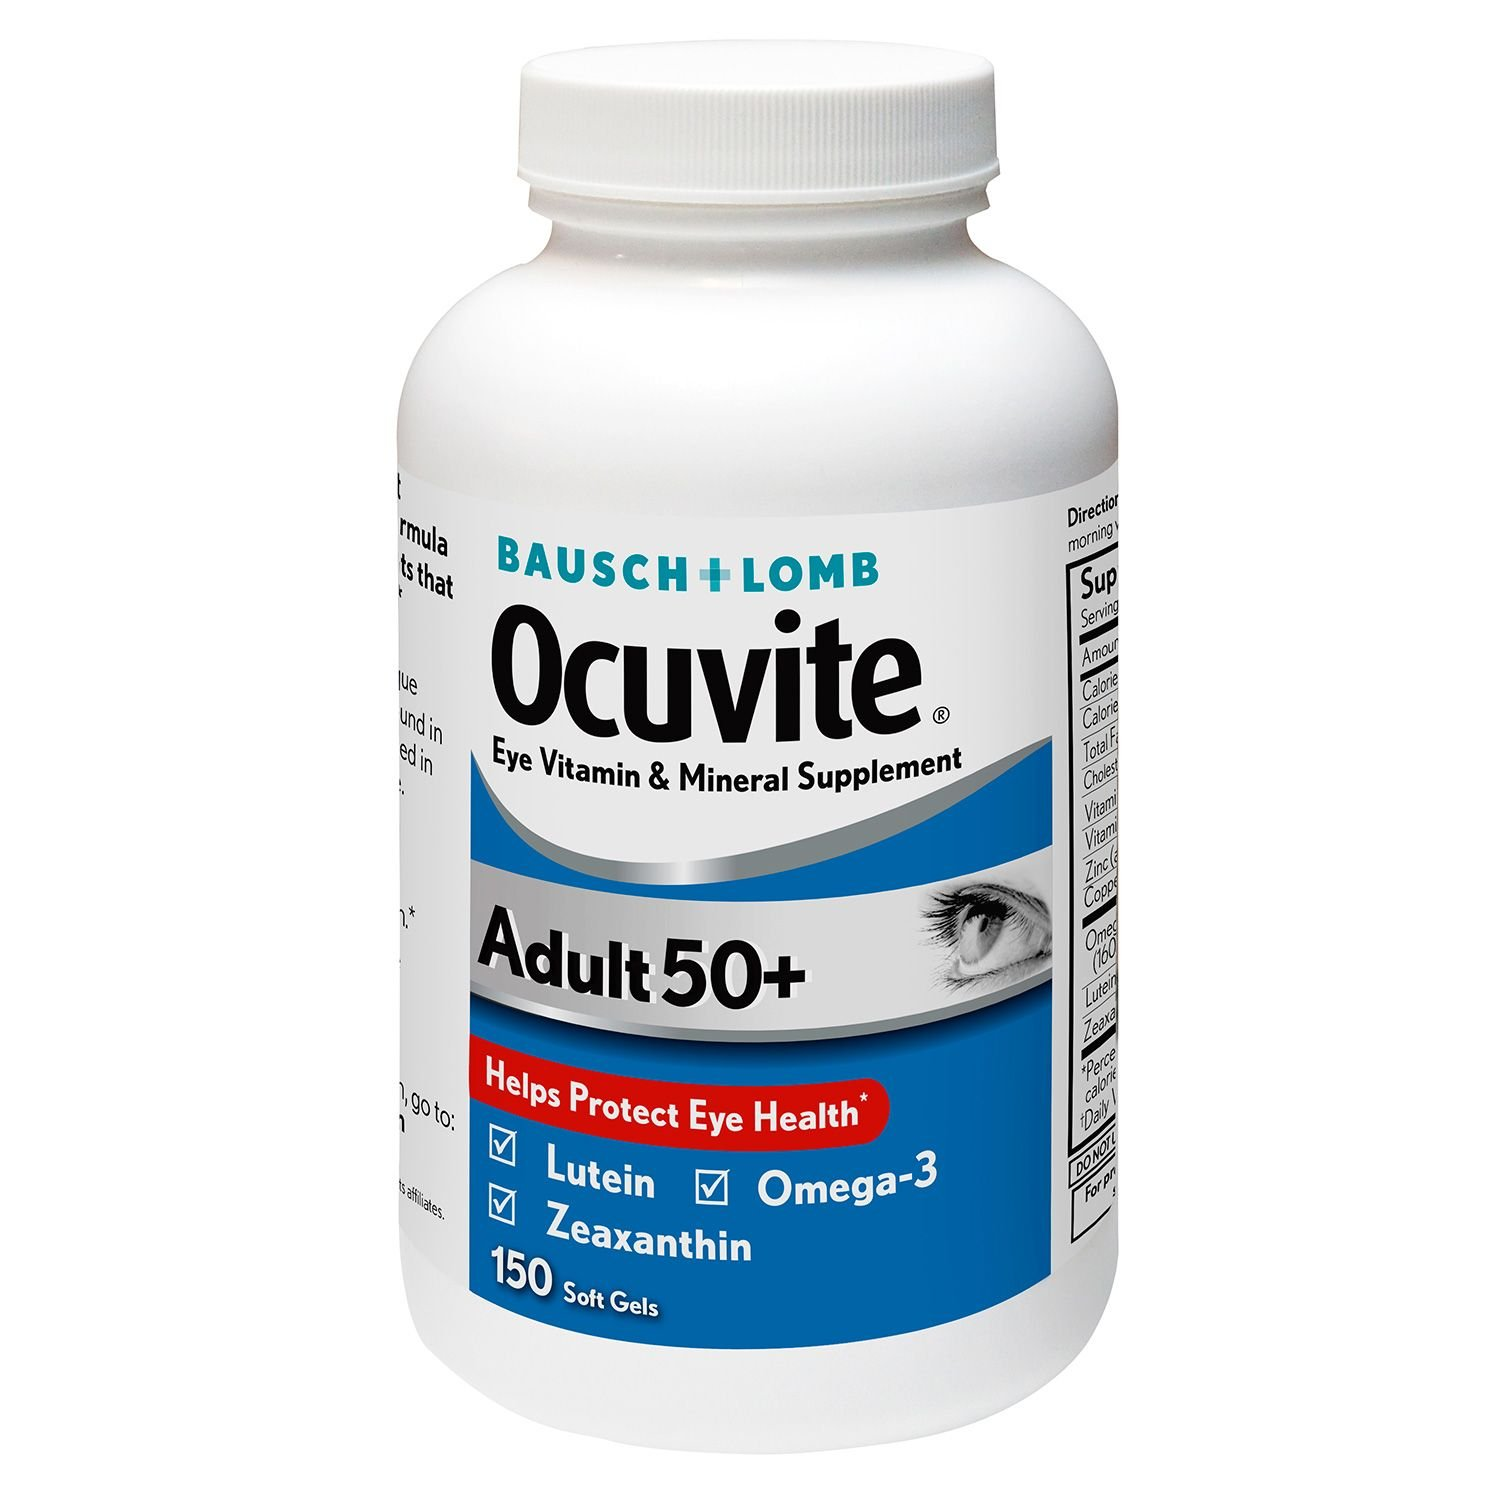 Bausch & Lomb Ocuvite Adult 50+ Vitamin & Mineral Supplement Soft Gels, 2Pack (150-Count Bottle Each ) bmdwl